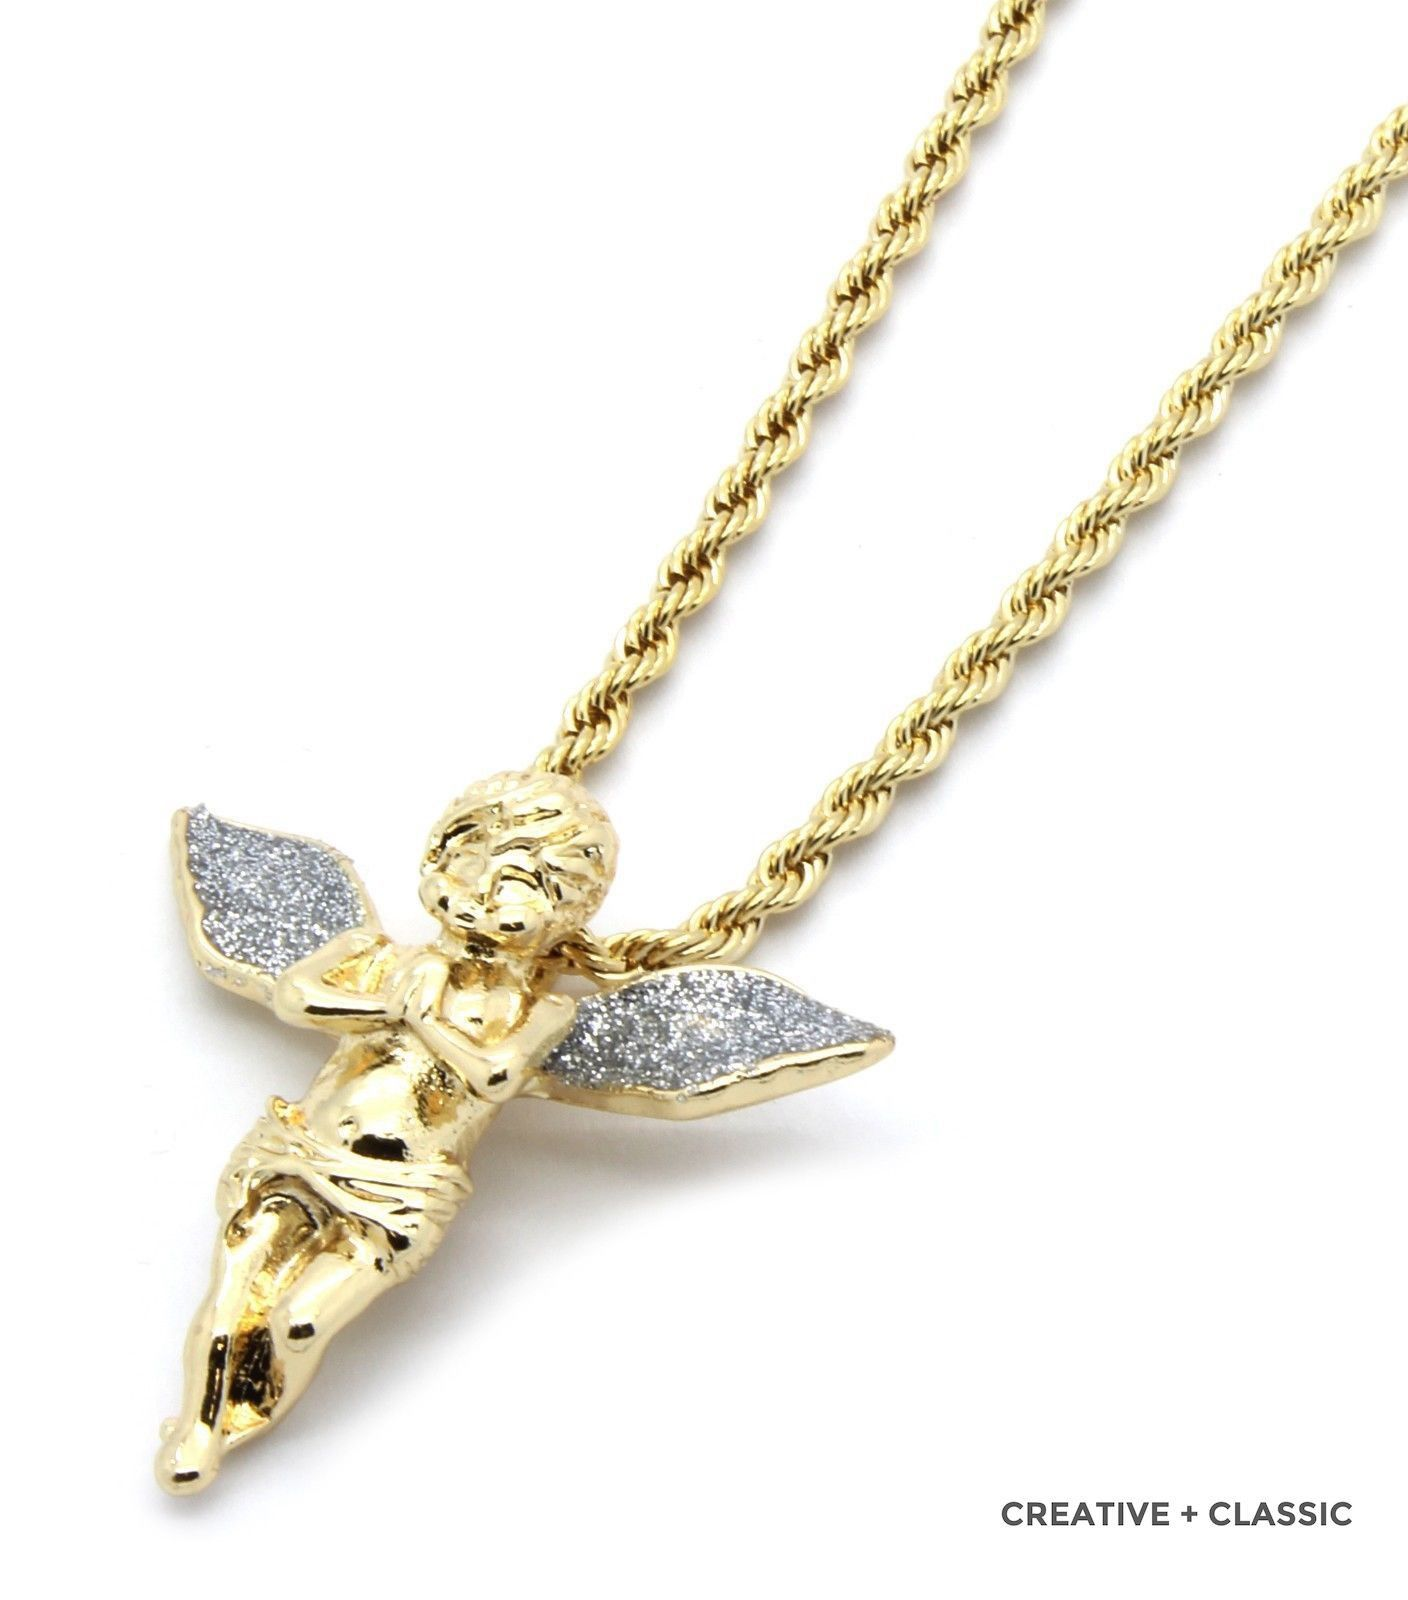 K gold plated blue or silver stardust angel pendant necklace with